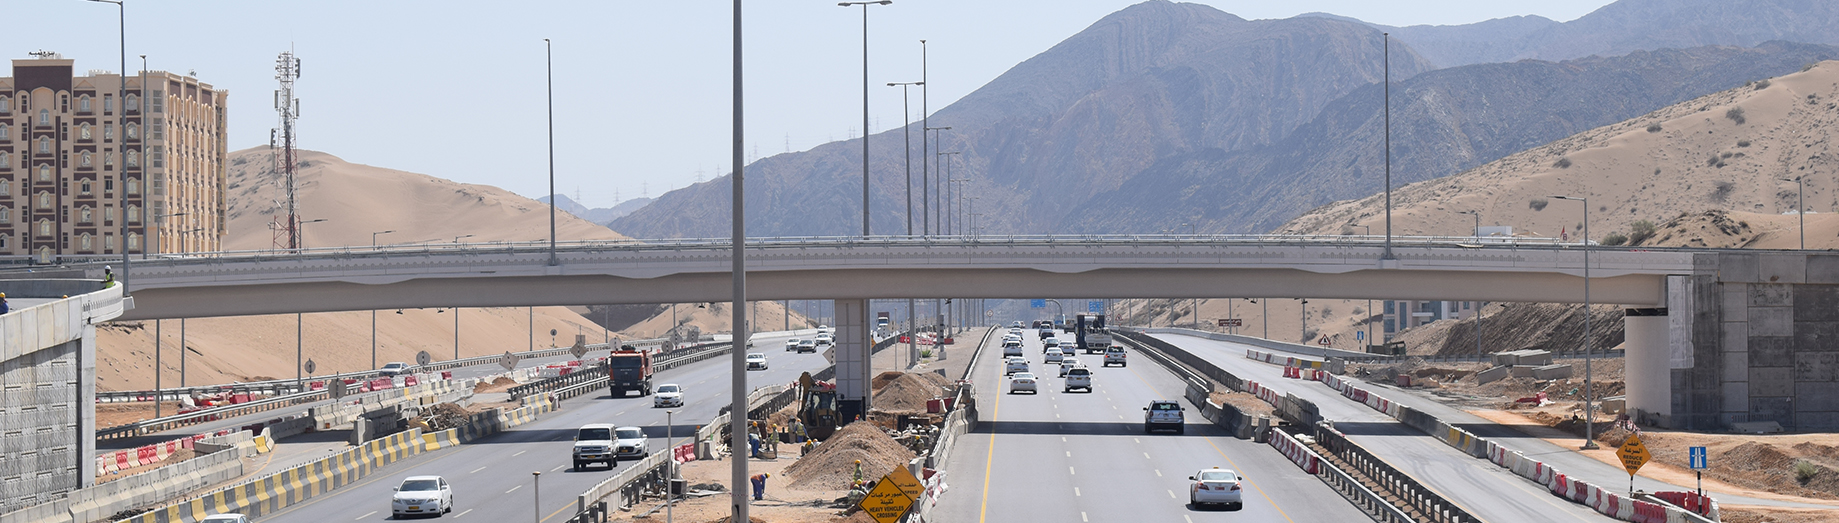 Mall of Oman-Enabling and Highway works